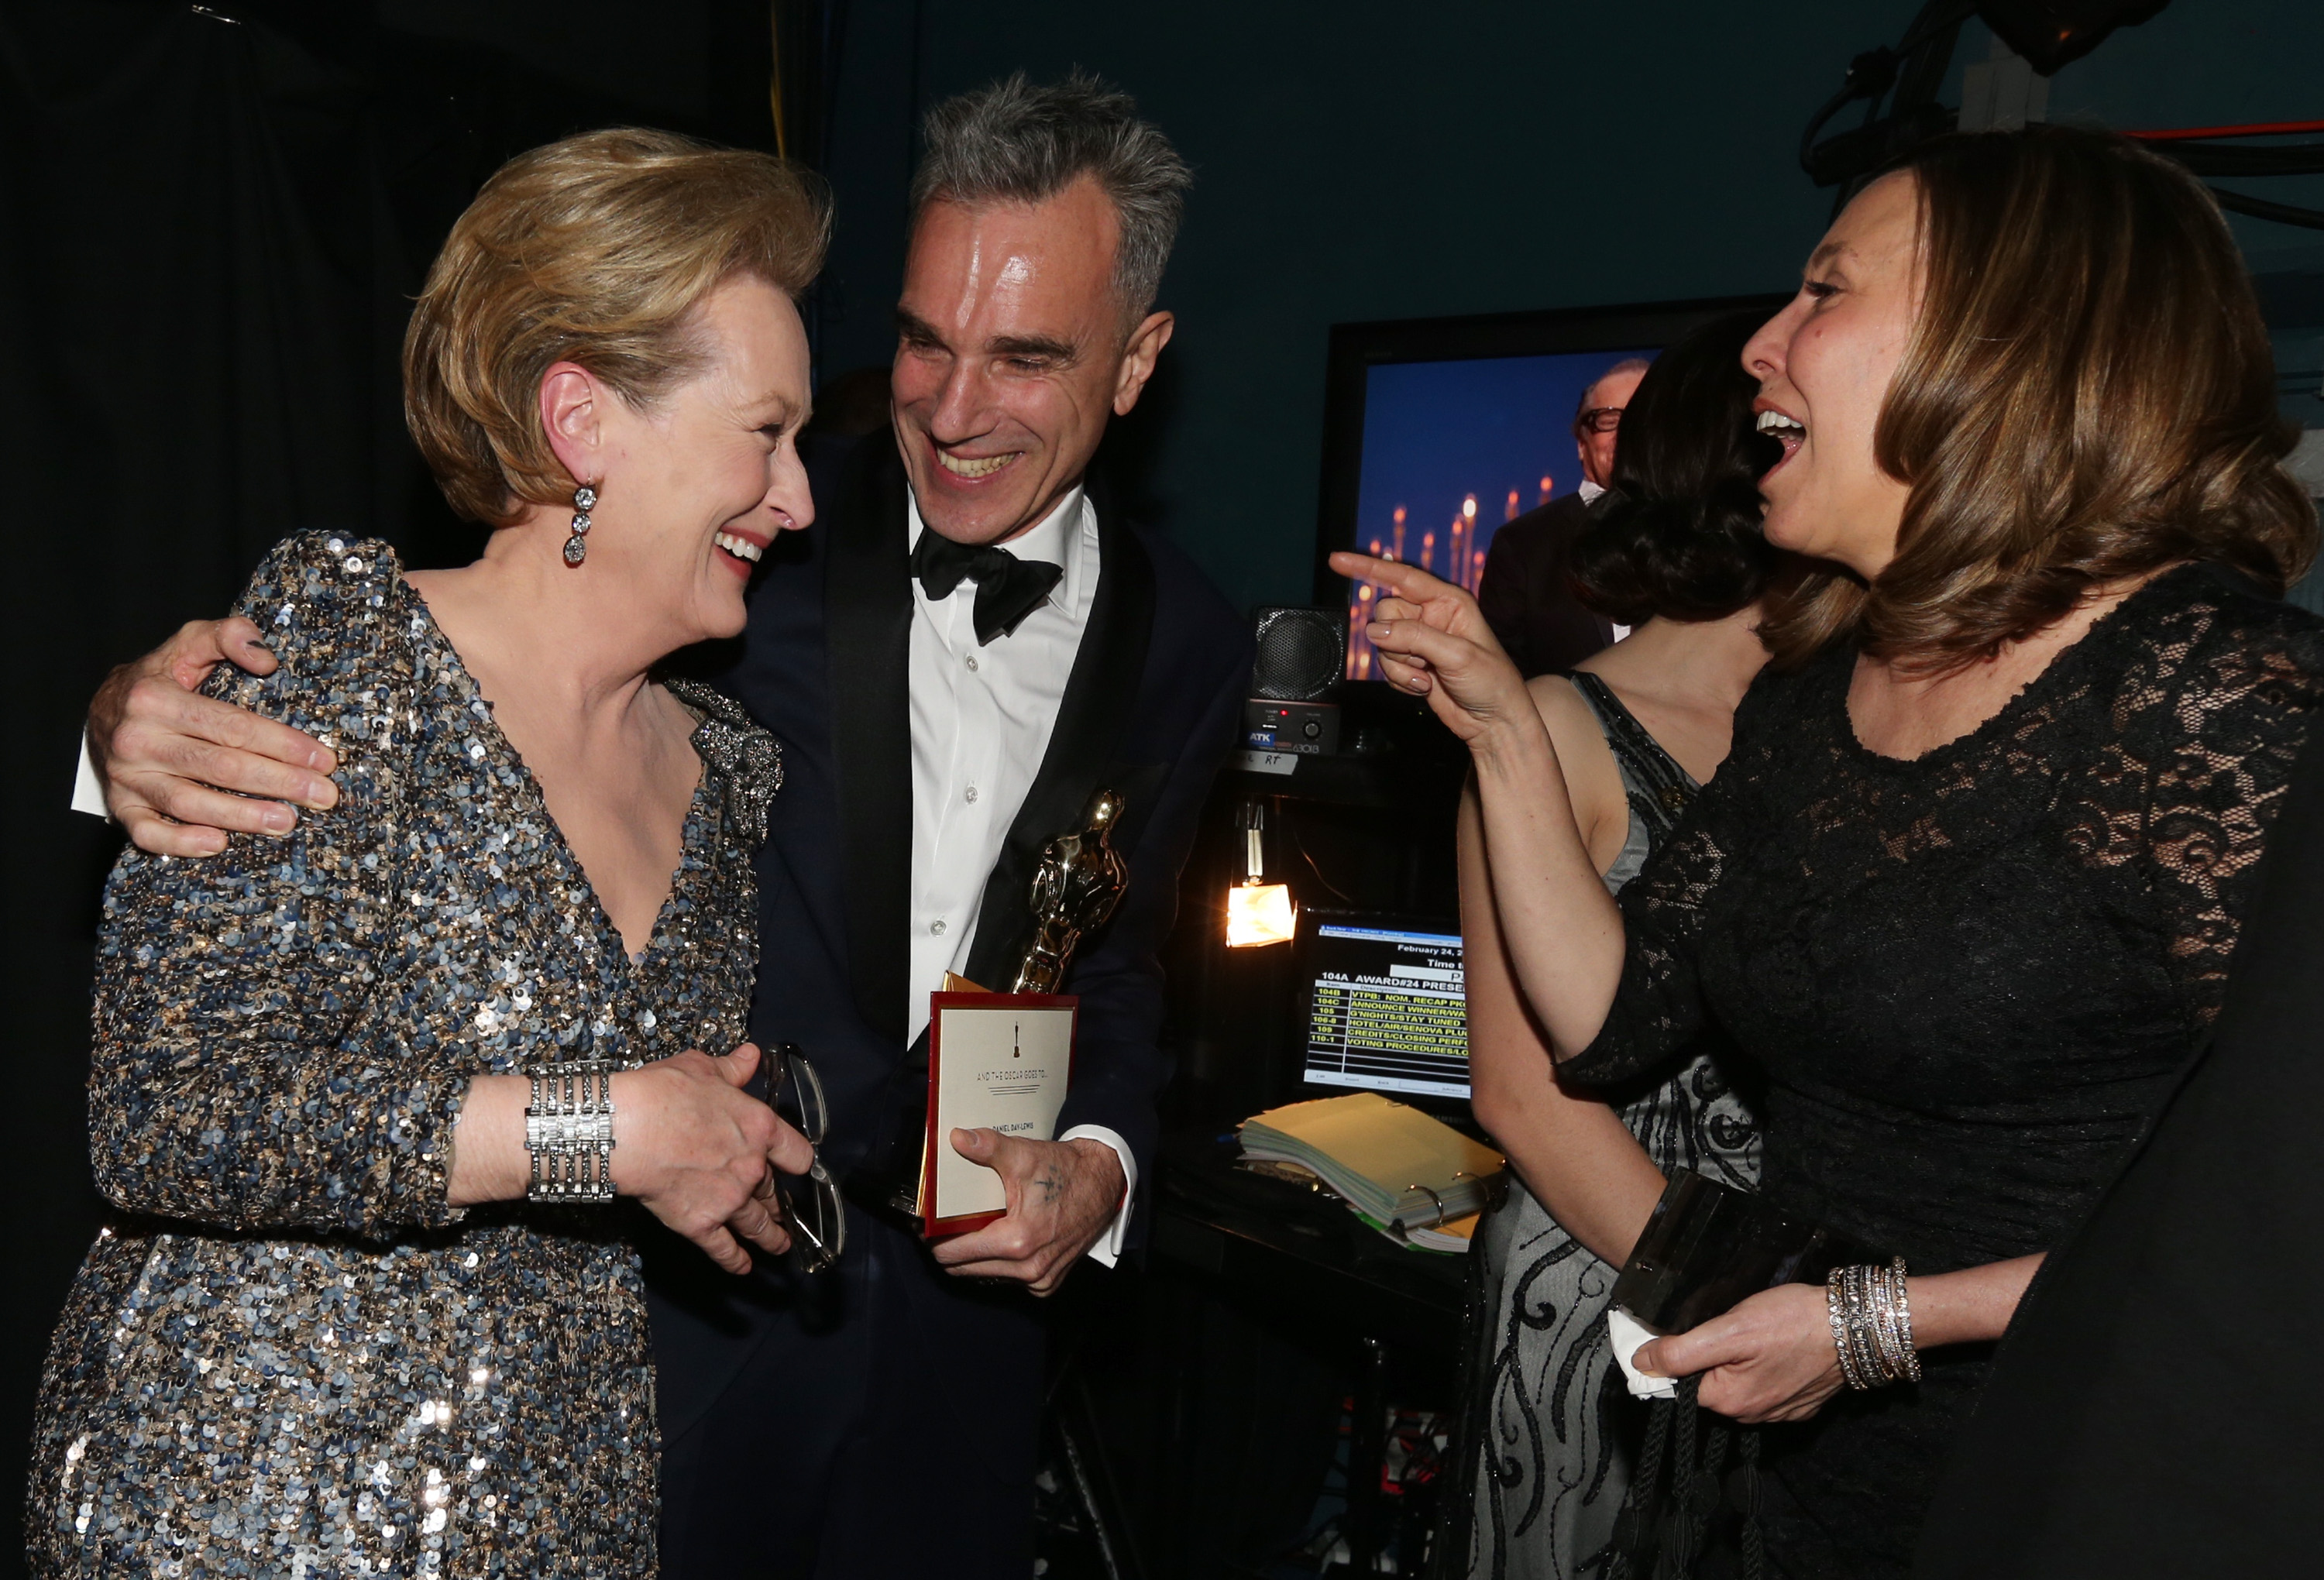 Meryl Streep and Daniel Day-Lewis shared a moment backstage.